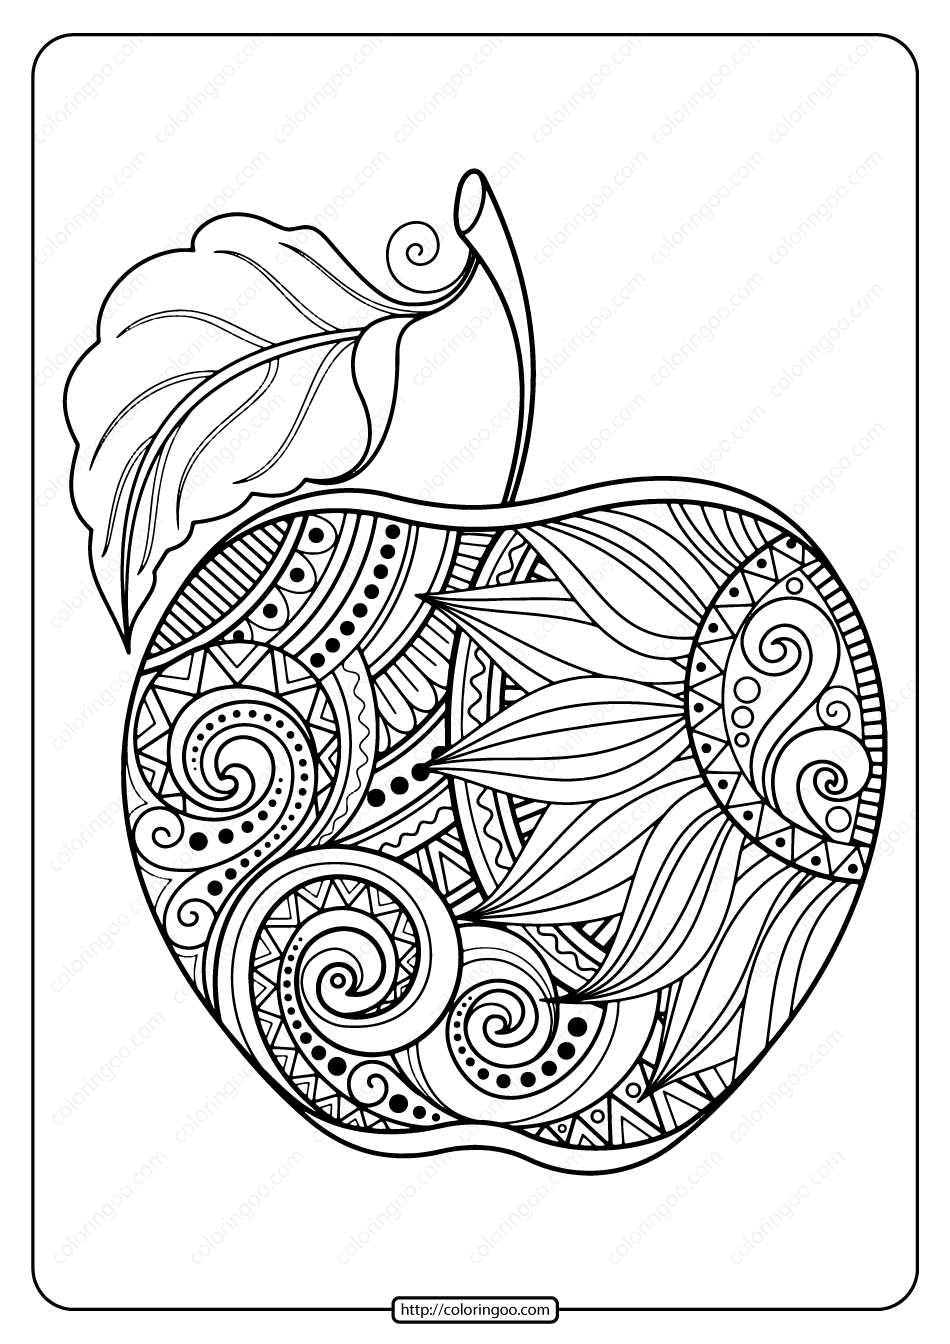 Printable Zentangle Apple Pdf Coloring Page Apple Coloring Pages Mandala Coloring Pages Coloring Pages